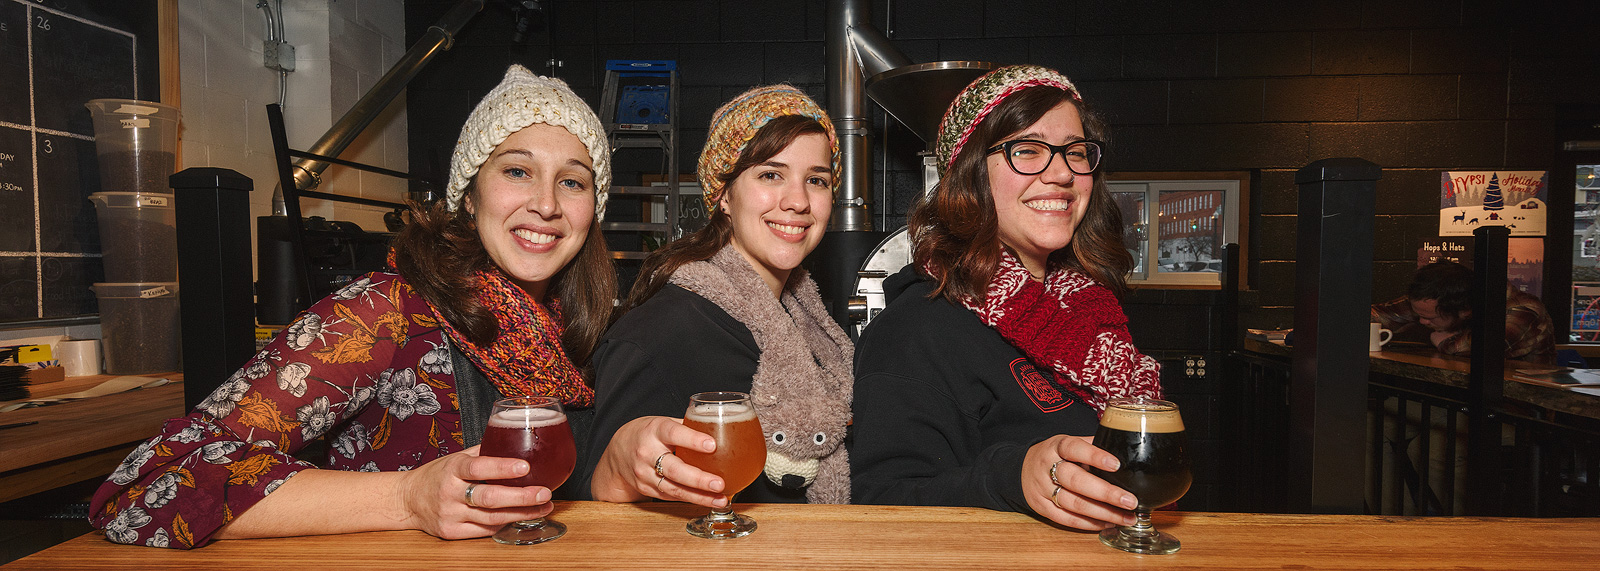 Cultivate knitting group members Bekah Wallace, Katie Morris and Hannah Williamson